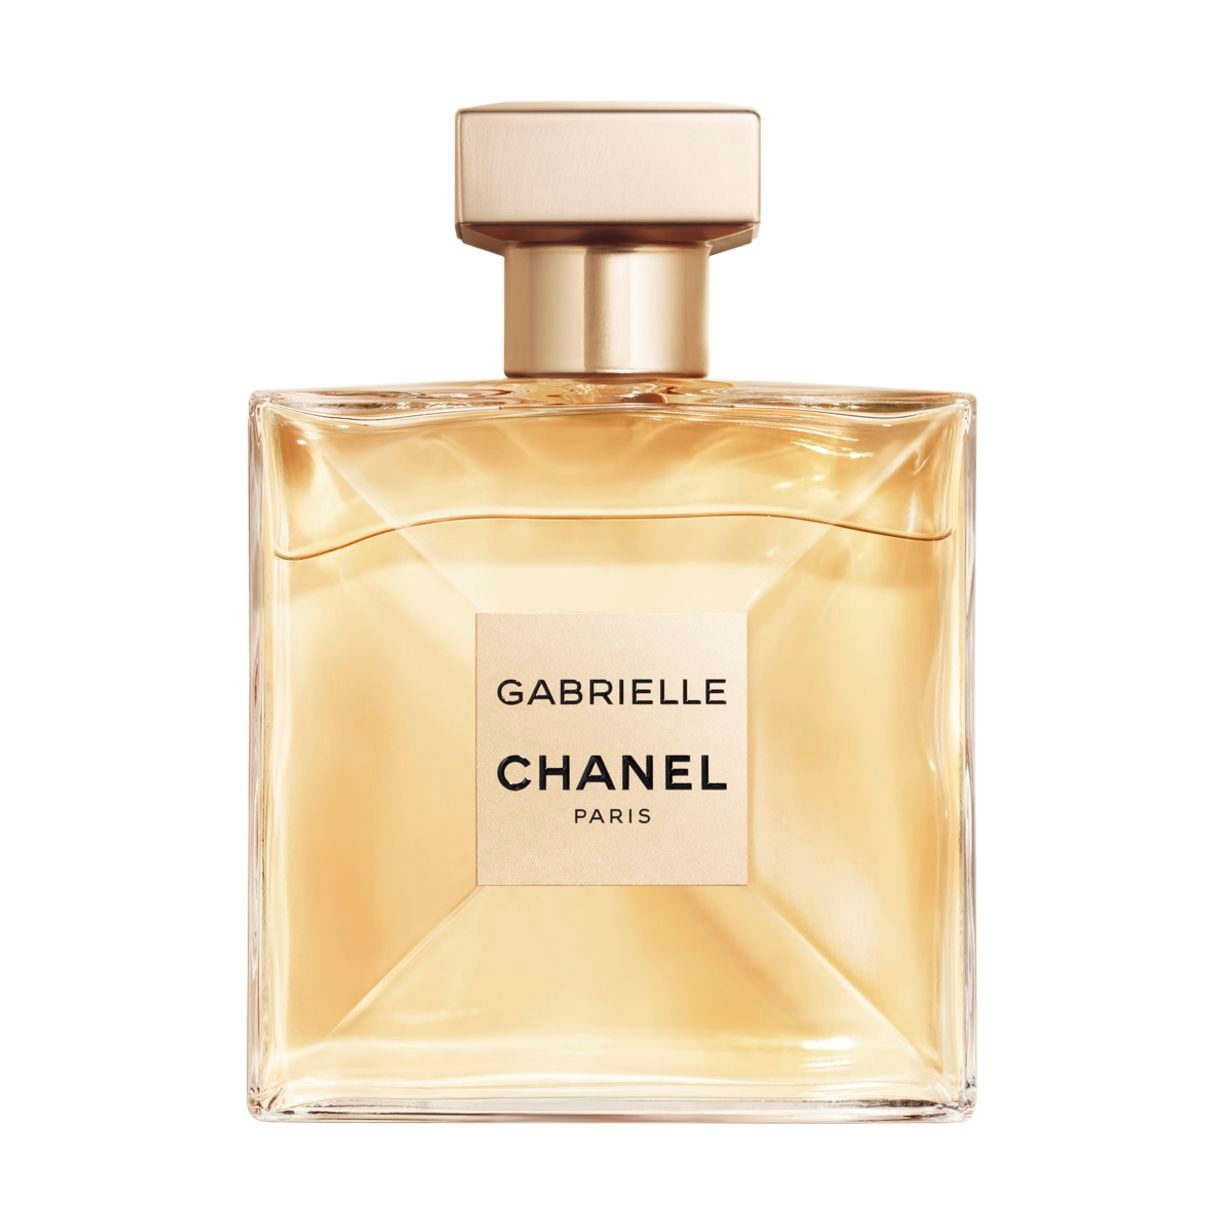 GABRIELLE CHANEL EAU DE PARFUM SPRAY 50ML